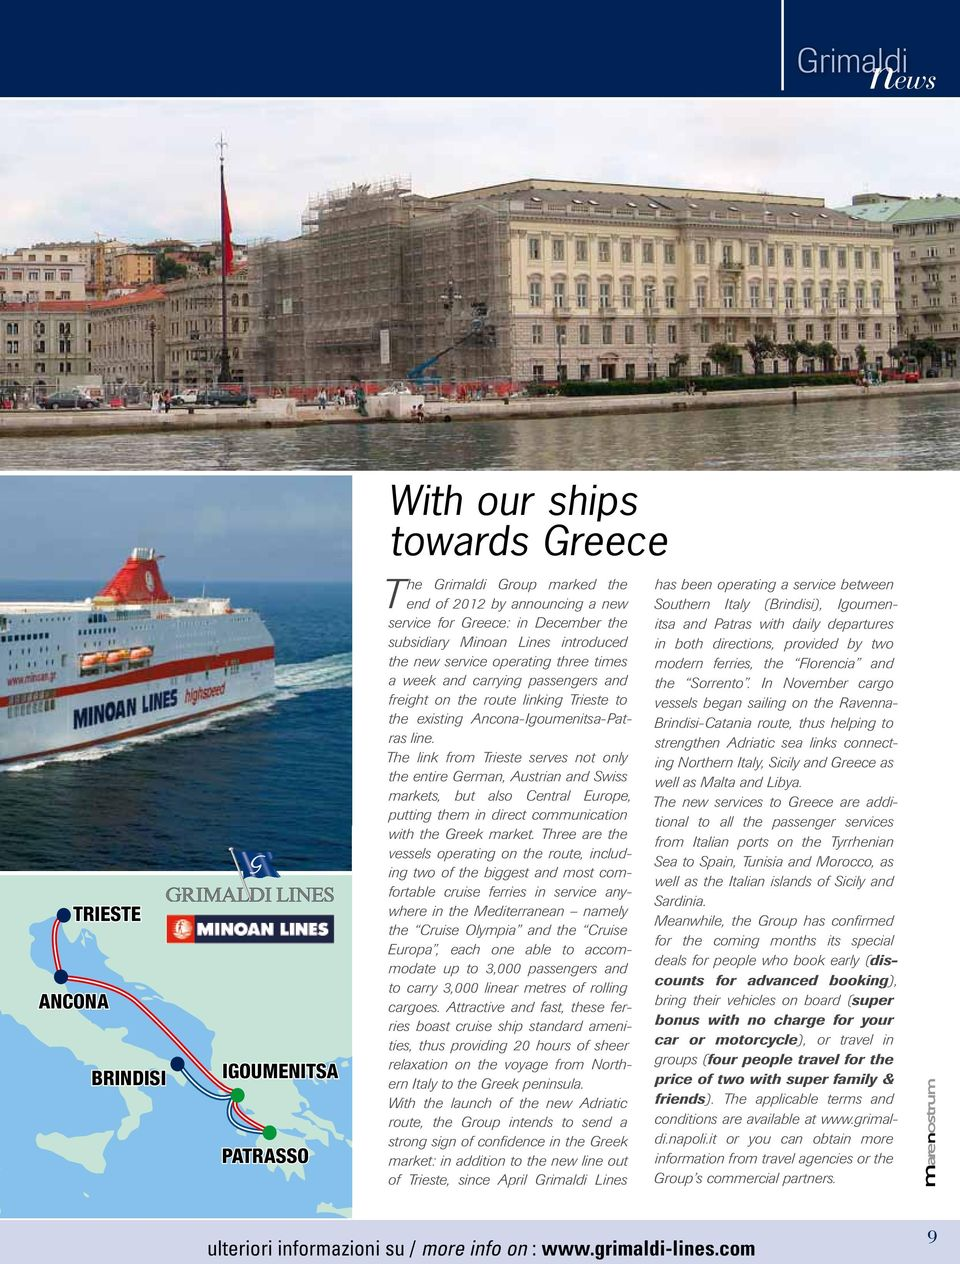 The link from Trieste serves not only the entire German, Austrian and Swiss markets, but also Central Europe, putting them in direct communication with the Greek market.